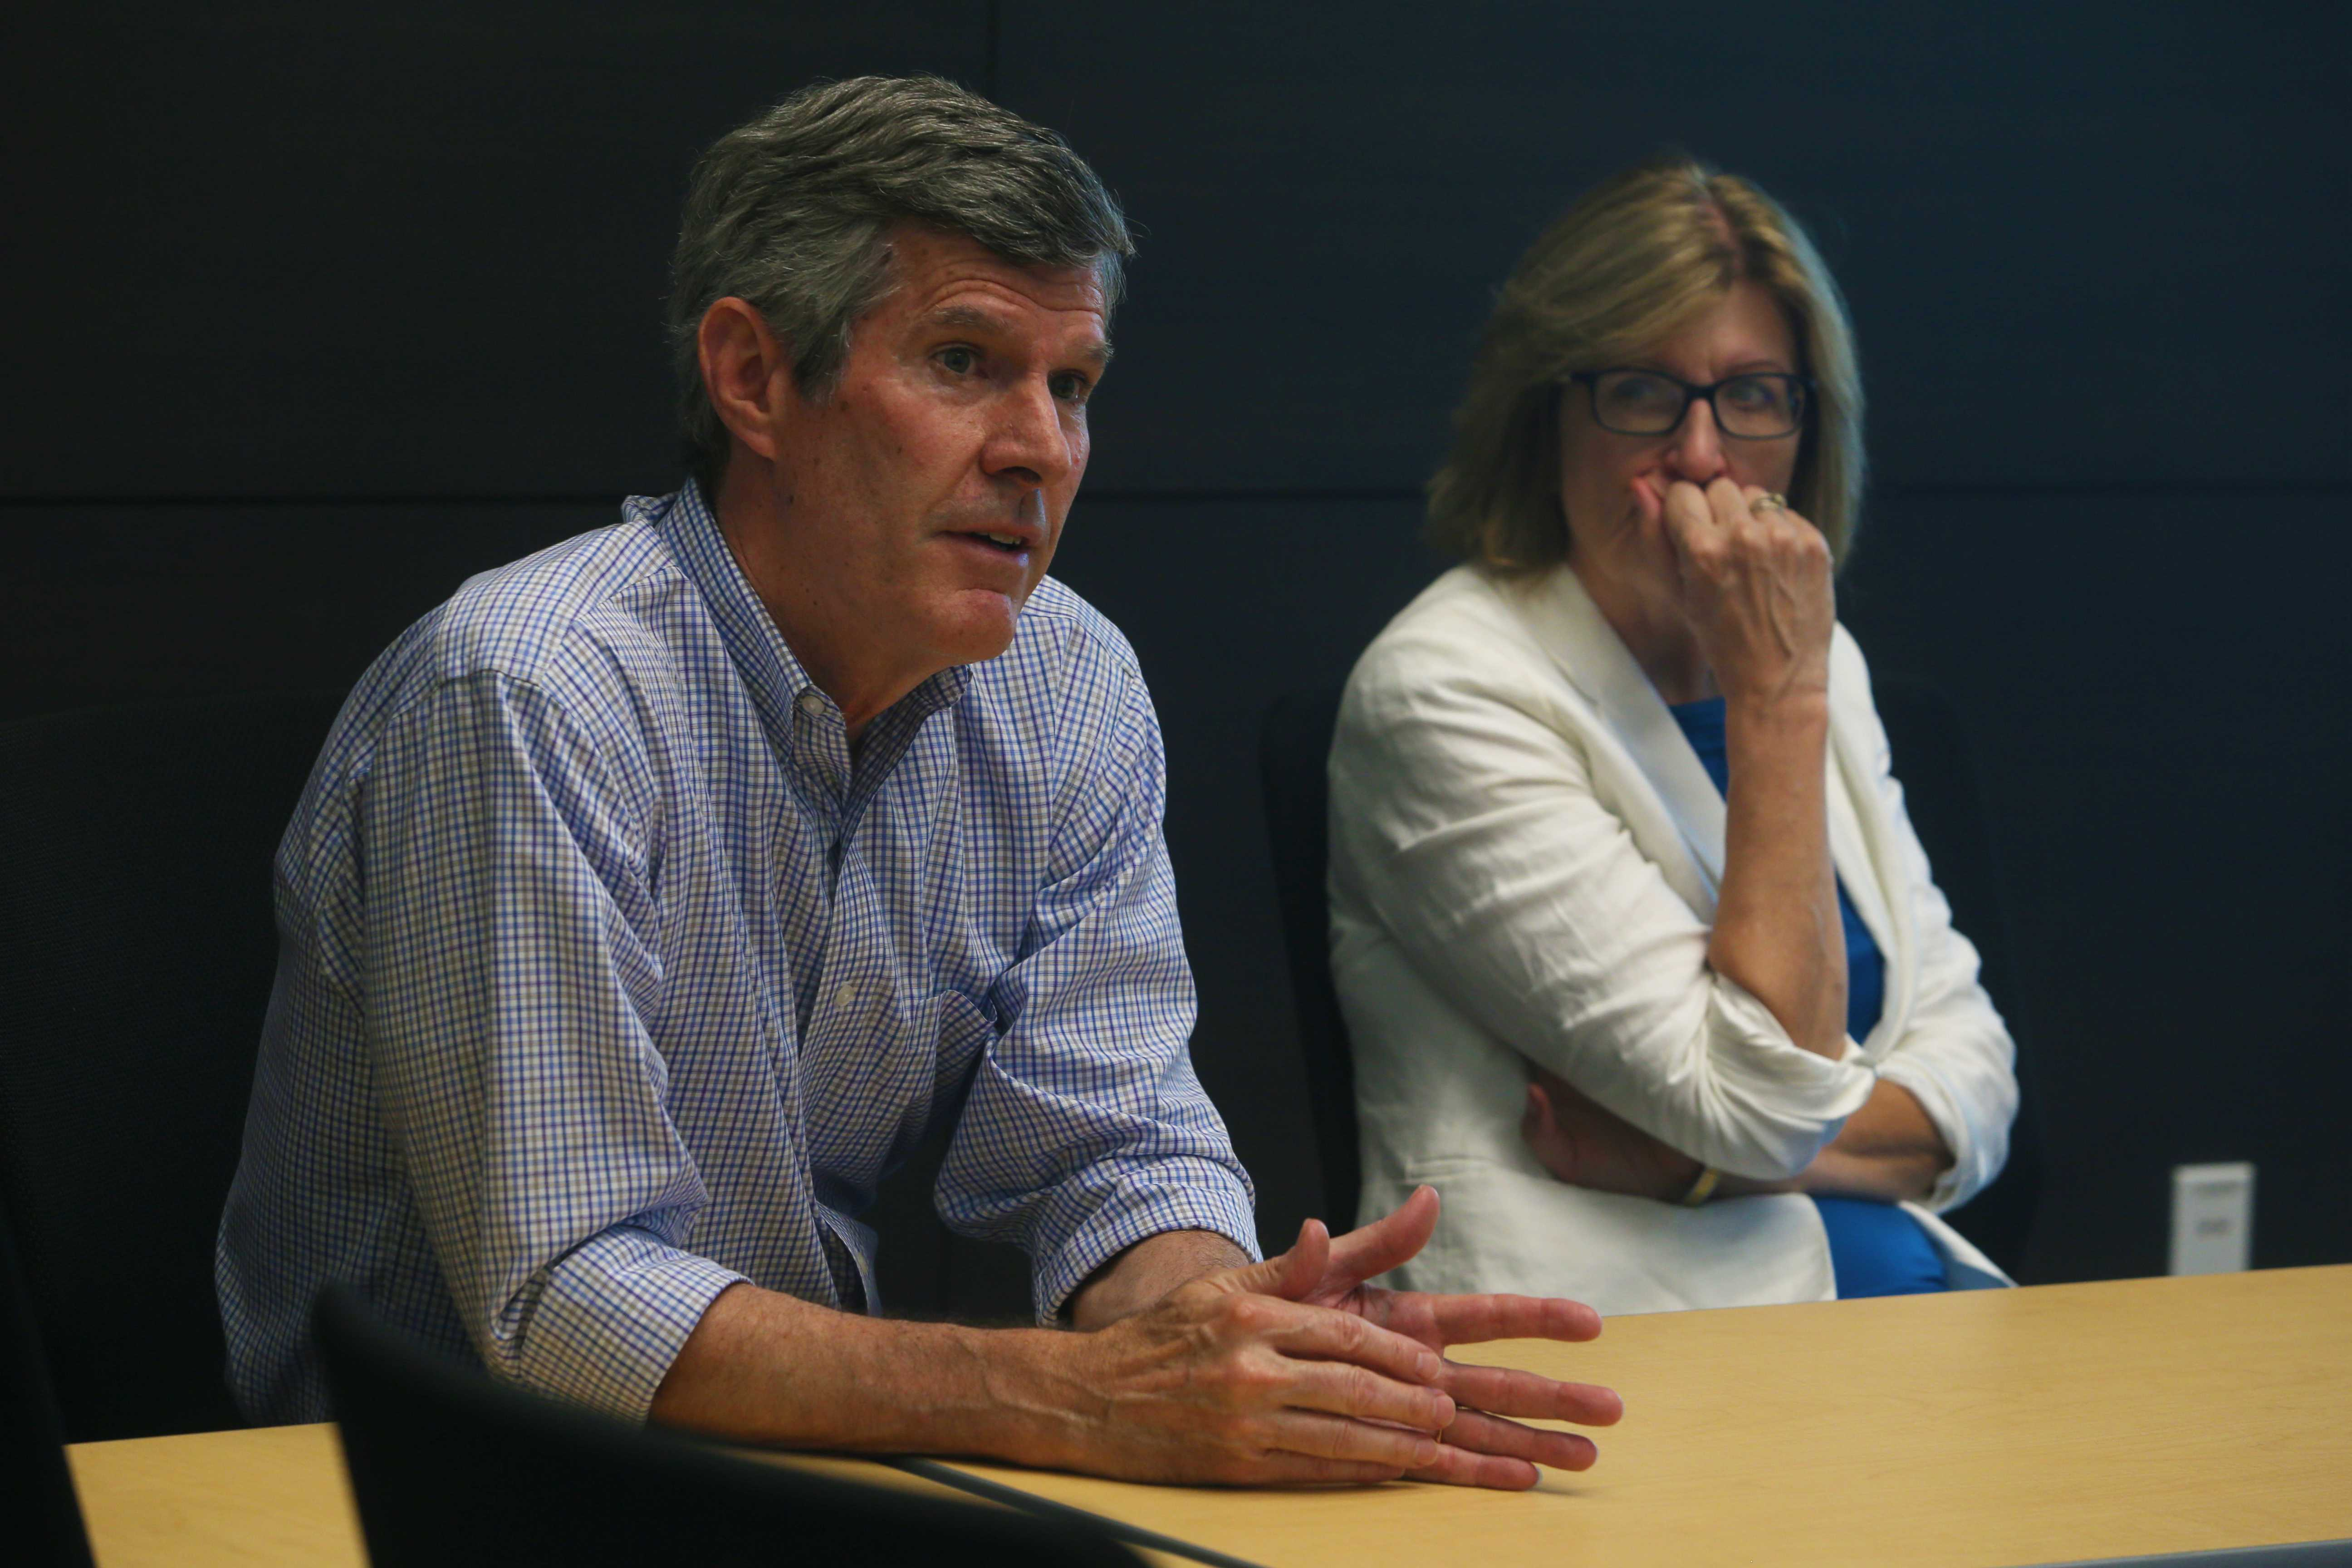 Democratic gubernatorial candidate Fred Hubbell and Lt. Gov. nominee state Sen. Rita Hart, D- Wheatland, listen to a presentation given at the Kirkwood Regional Center on June 18. (Tate Hildyard/The Daily Iowan)